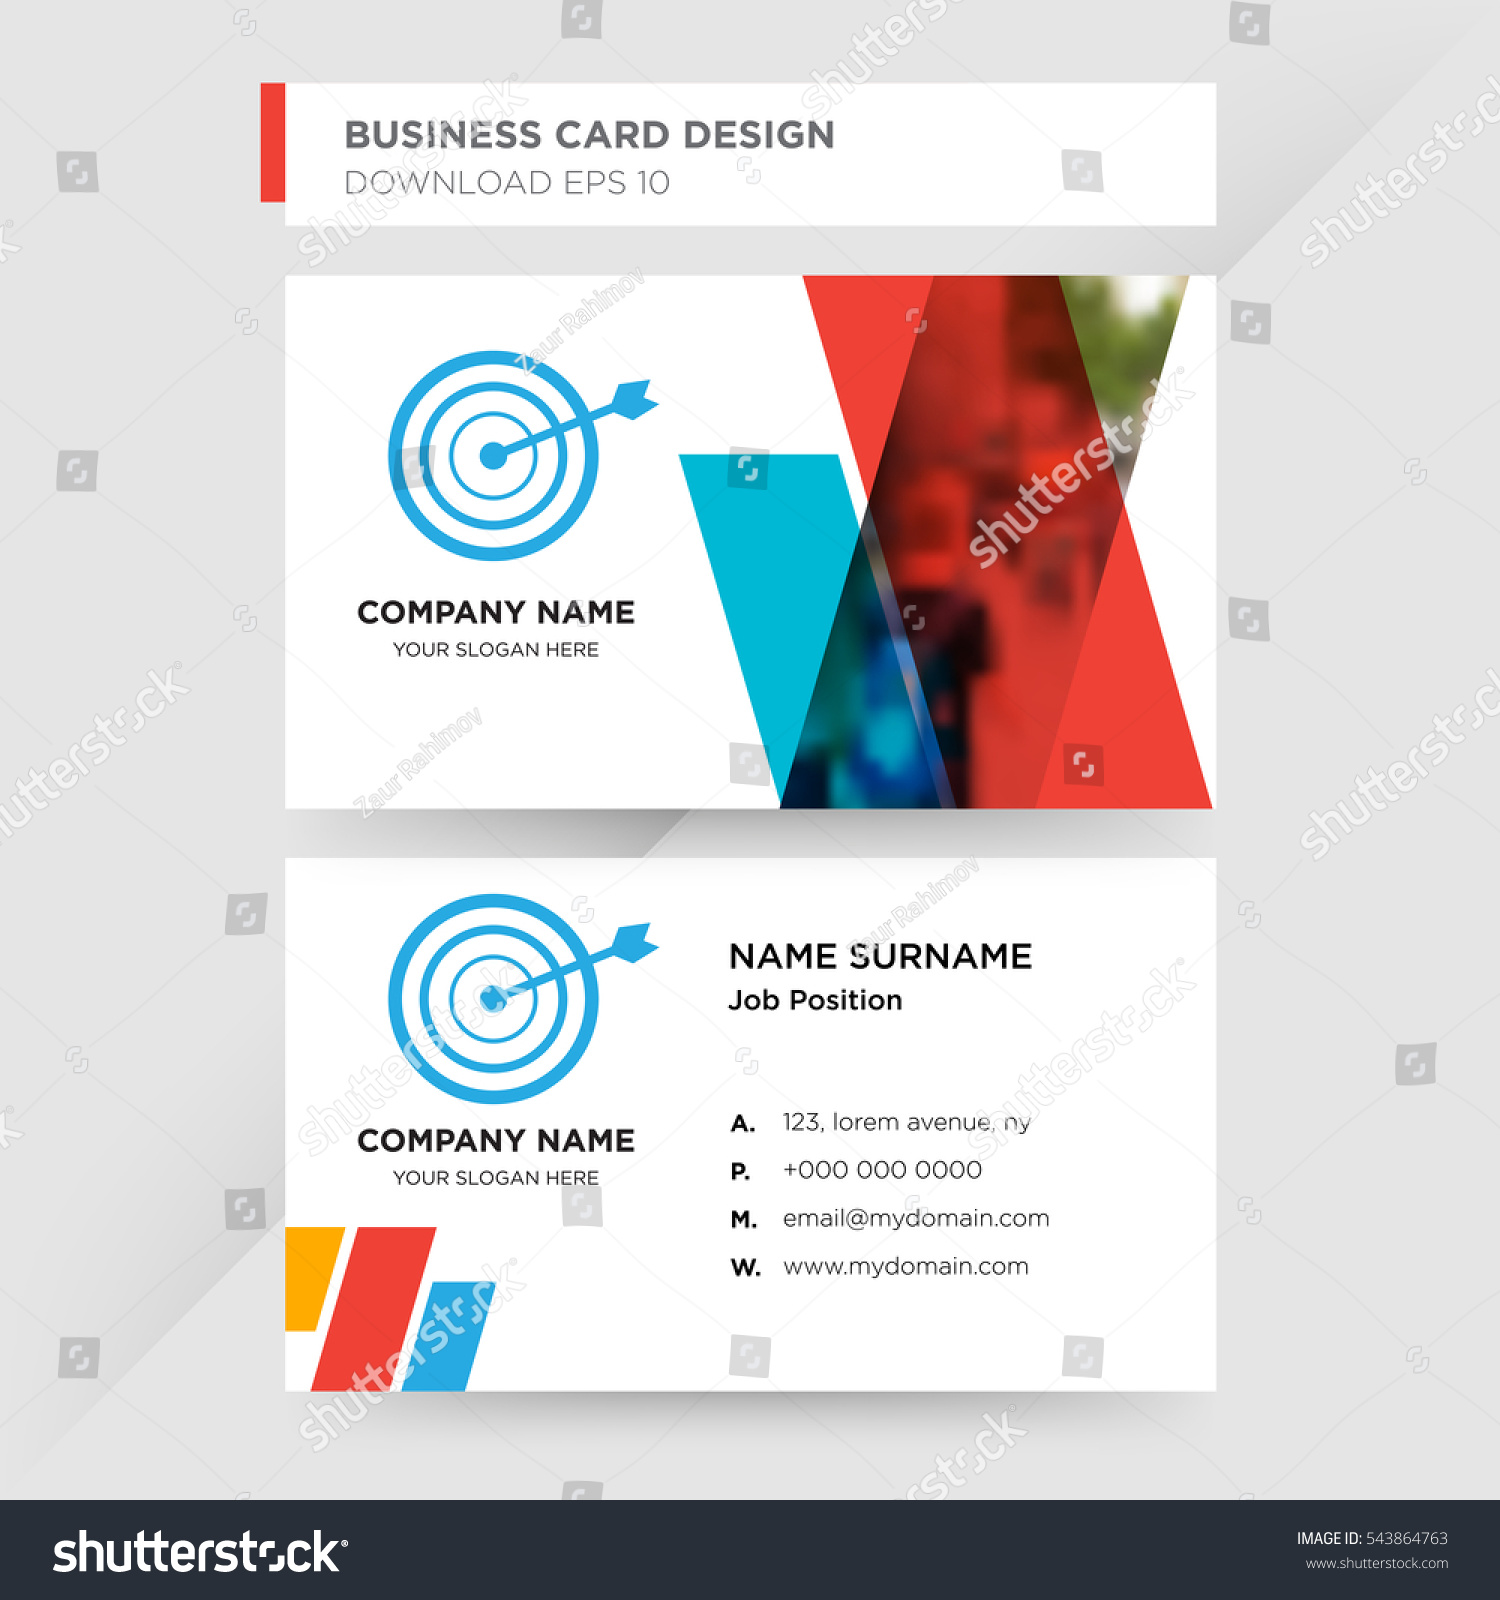 Template Business Card Consulting Services Company Stock Vector ...